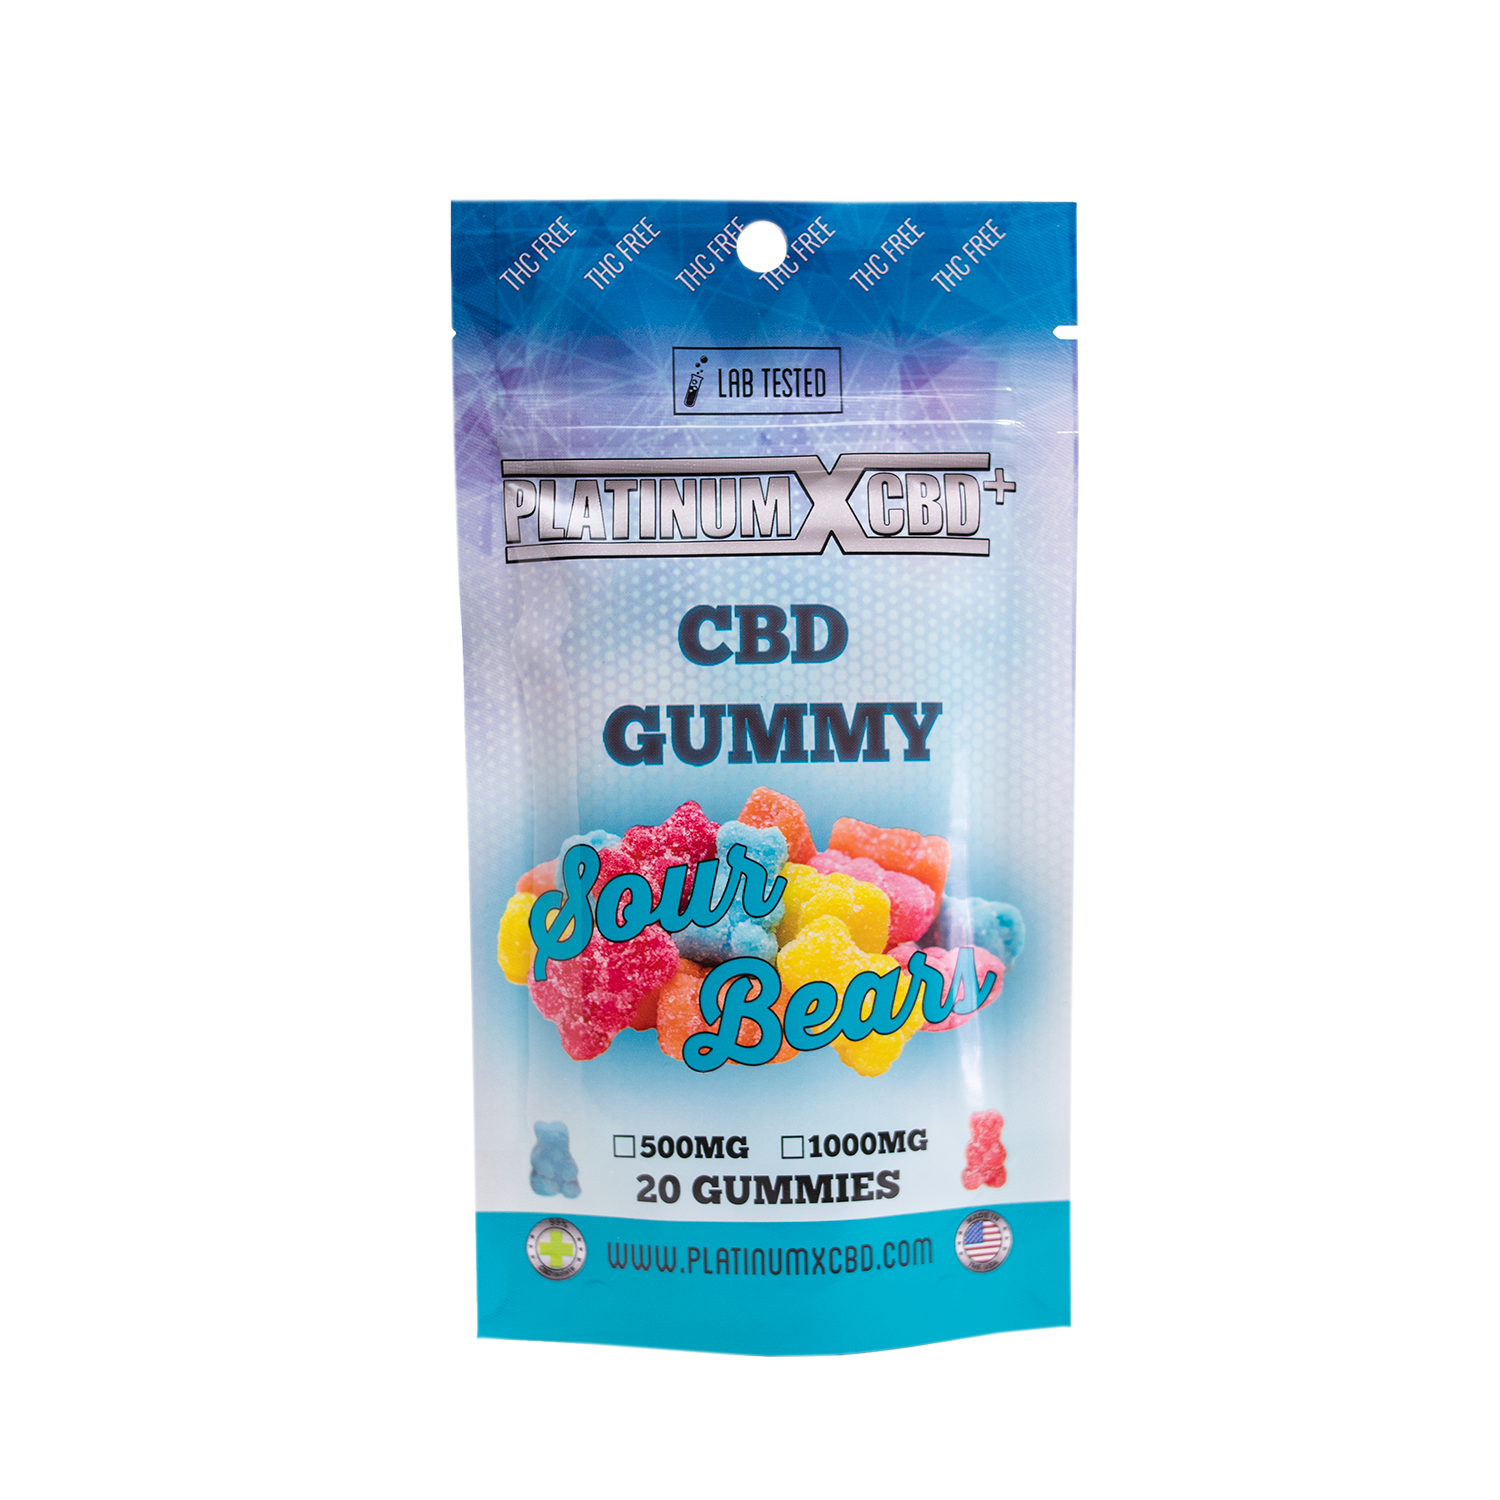 cbd Gummy, Gummy cbd, gummy, cbd gummies cbd, cbd products, the best cbd